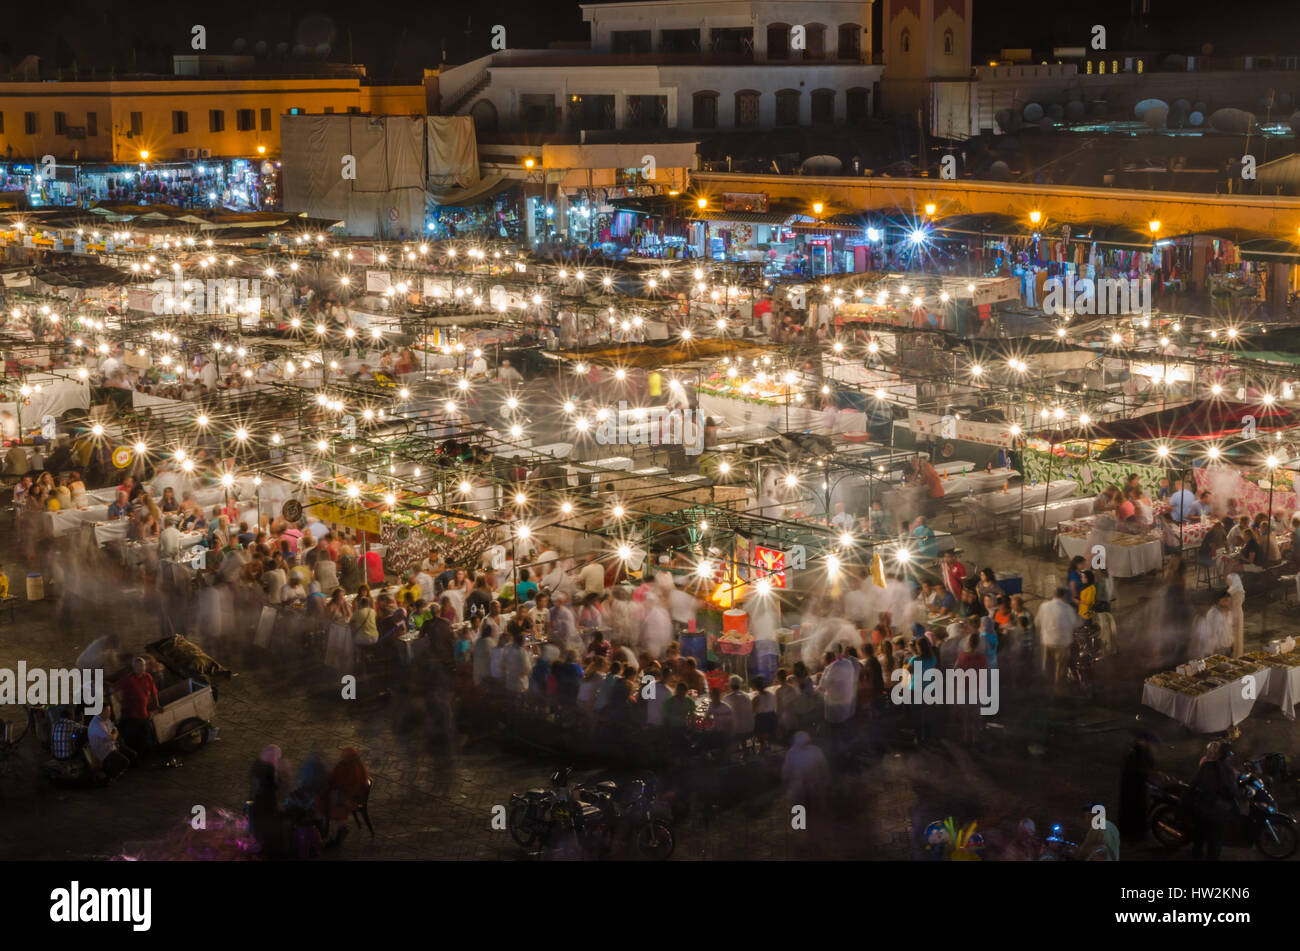 Famous square Jemaa El Fna busy with many people and lights during the night, medina of Marrakesh, Morocco Stock Photo